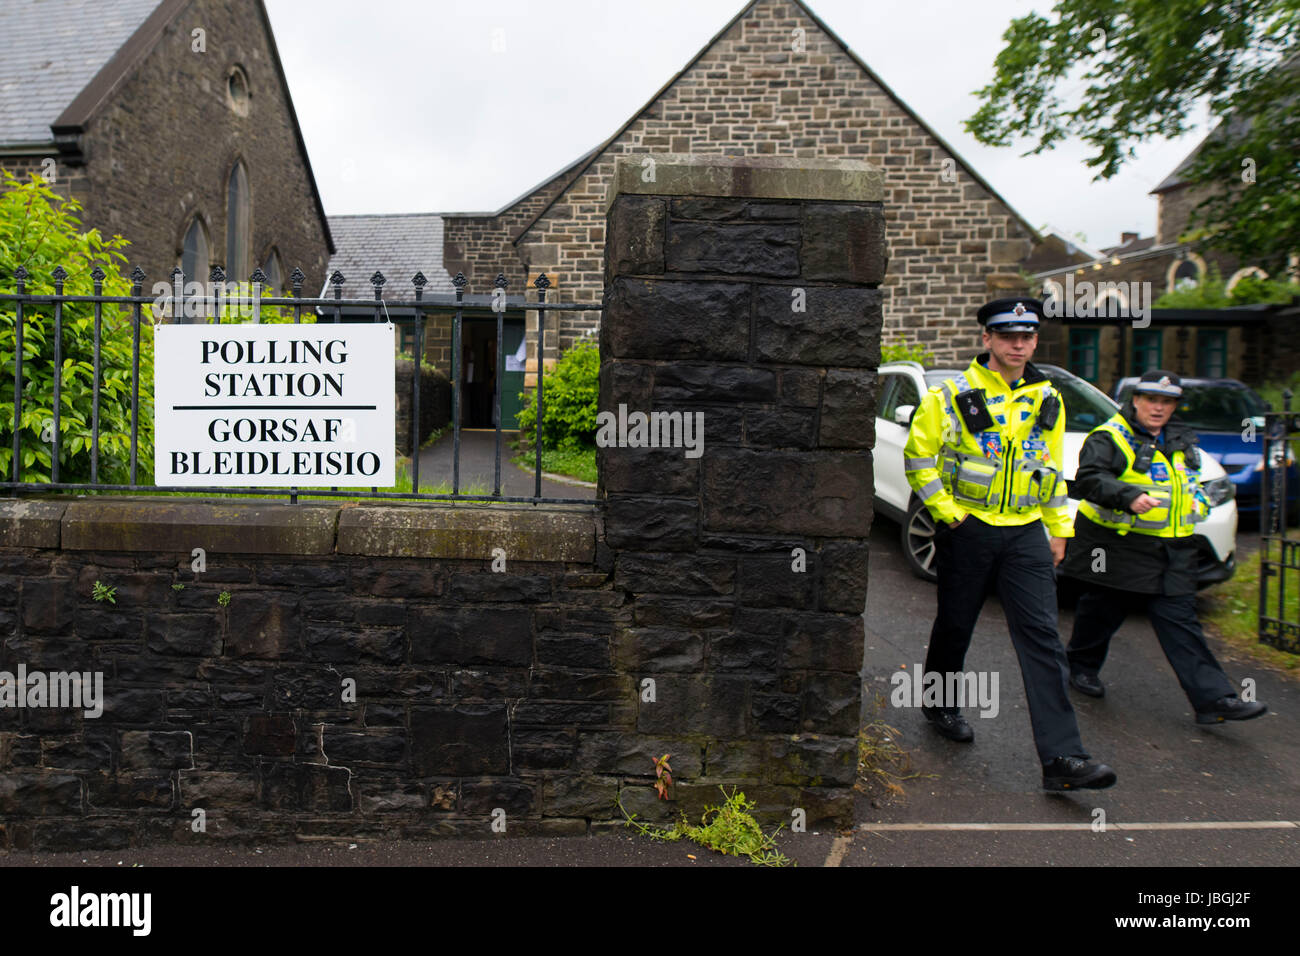 Two police officers leave a polling station in Merthyr, Wales, UK, on the day of the 2017 general election. - Stock Image